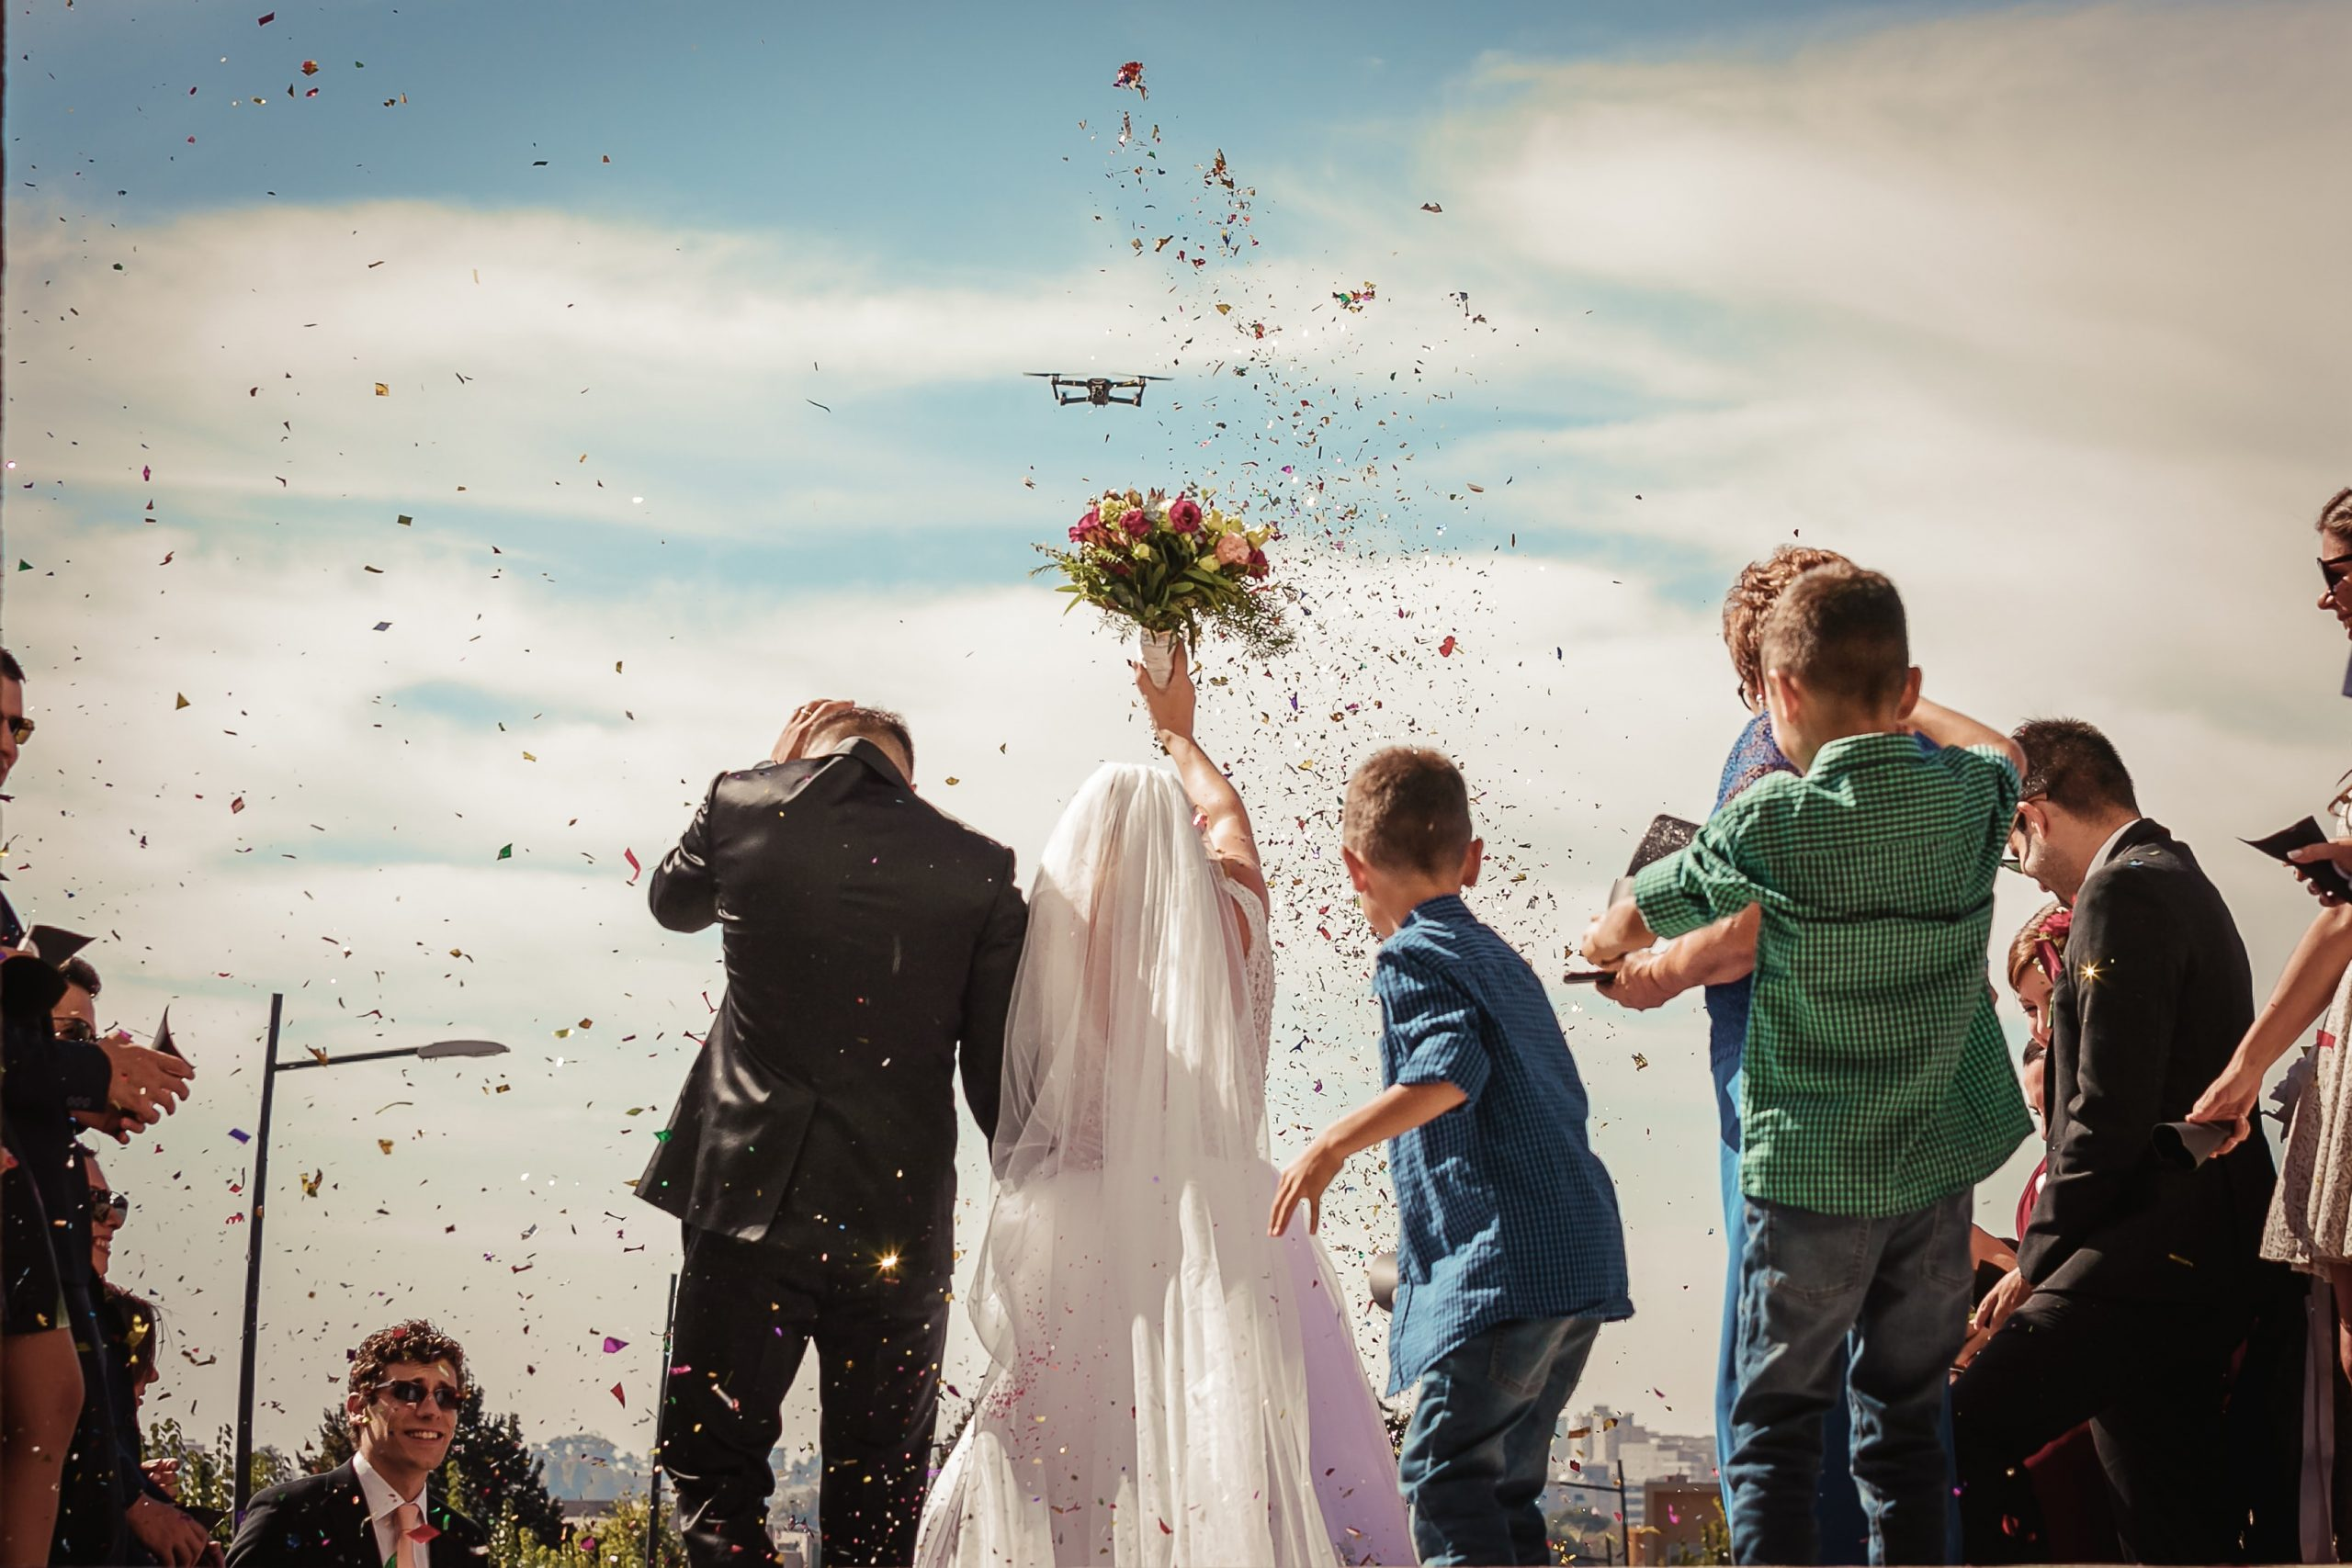 Drone Wedding Photography. Our Guide